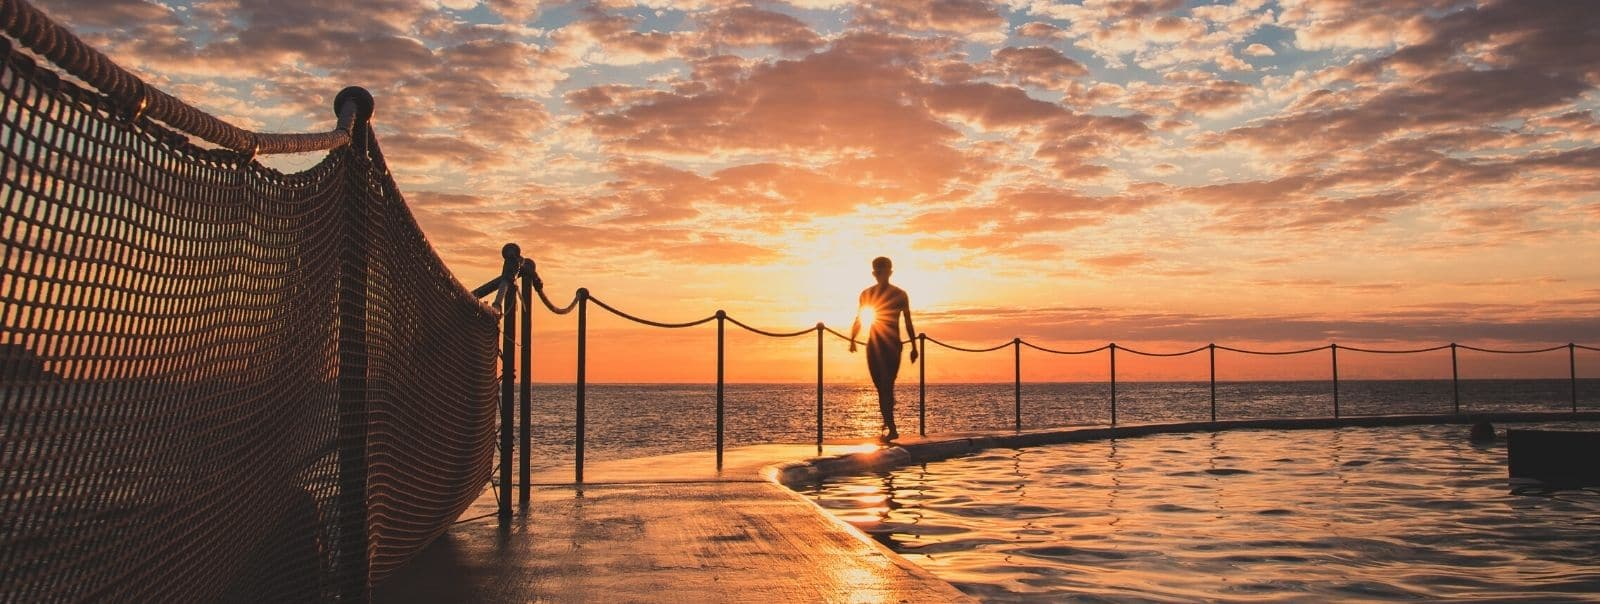 Man walking along edge of ocean pool at sunset at Sydney's Top Instagram Spots